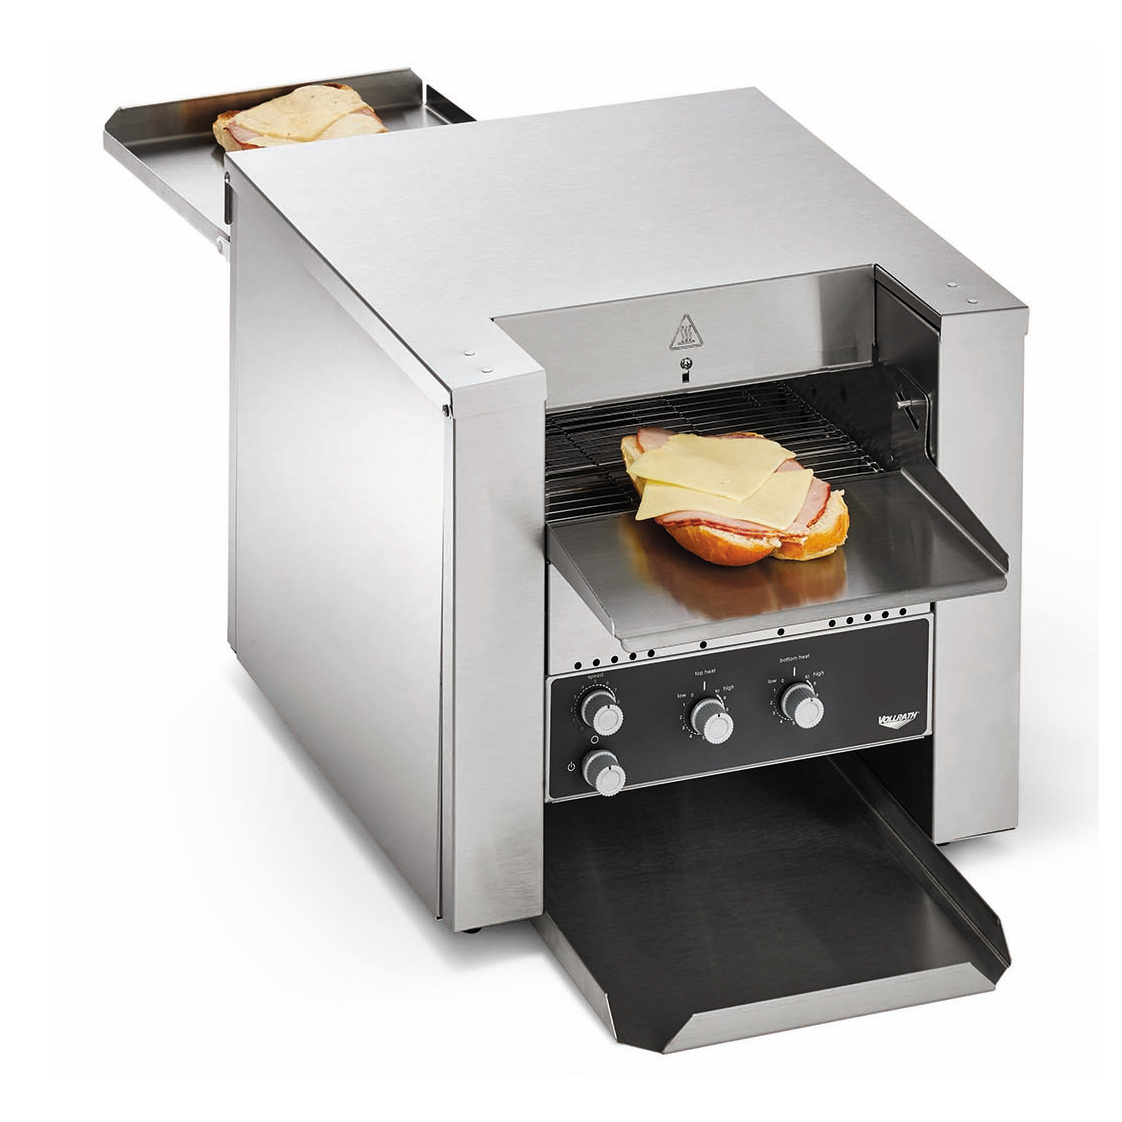 Vollrath CVT4-120300 toaster, conveyor type